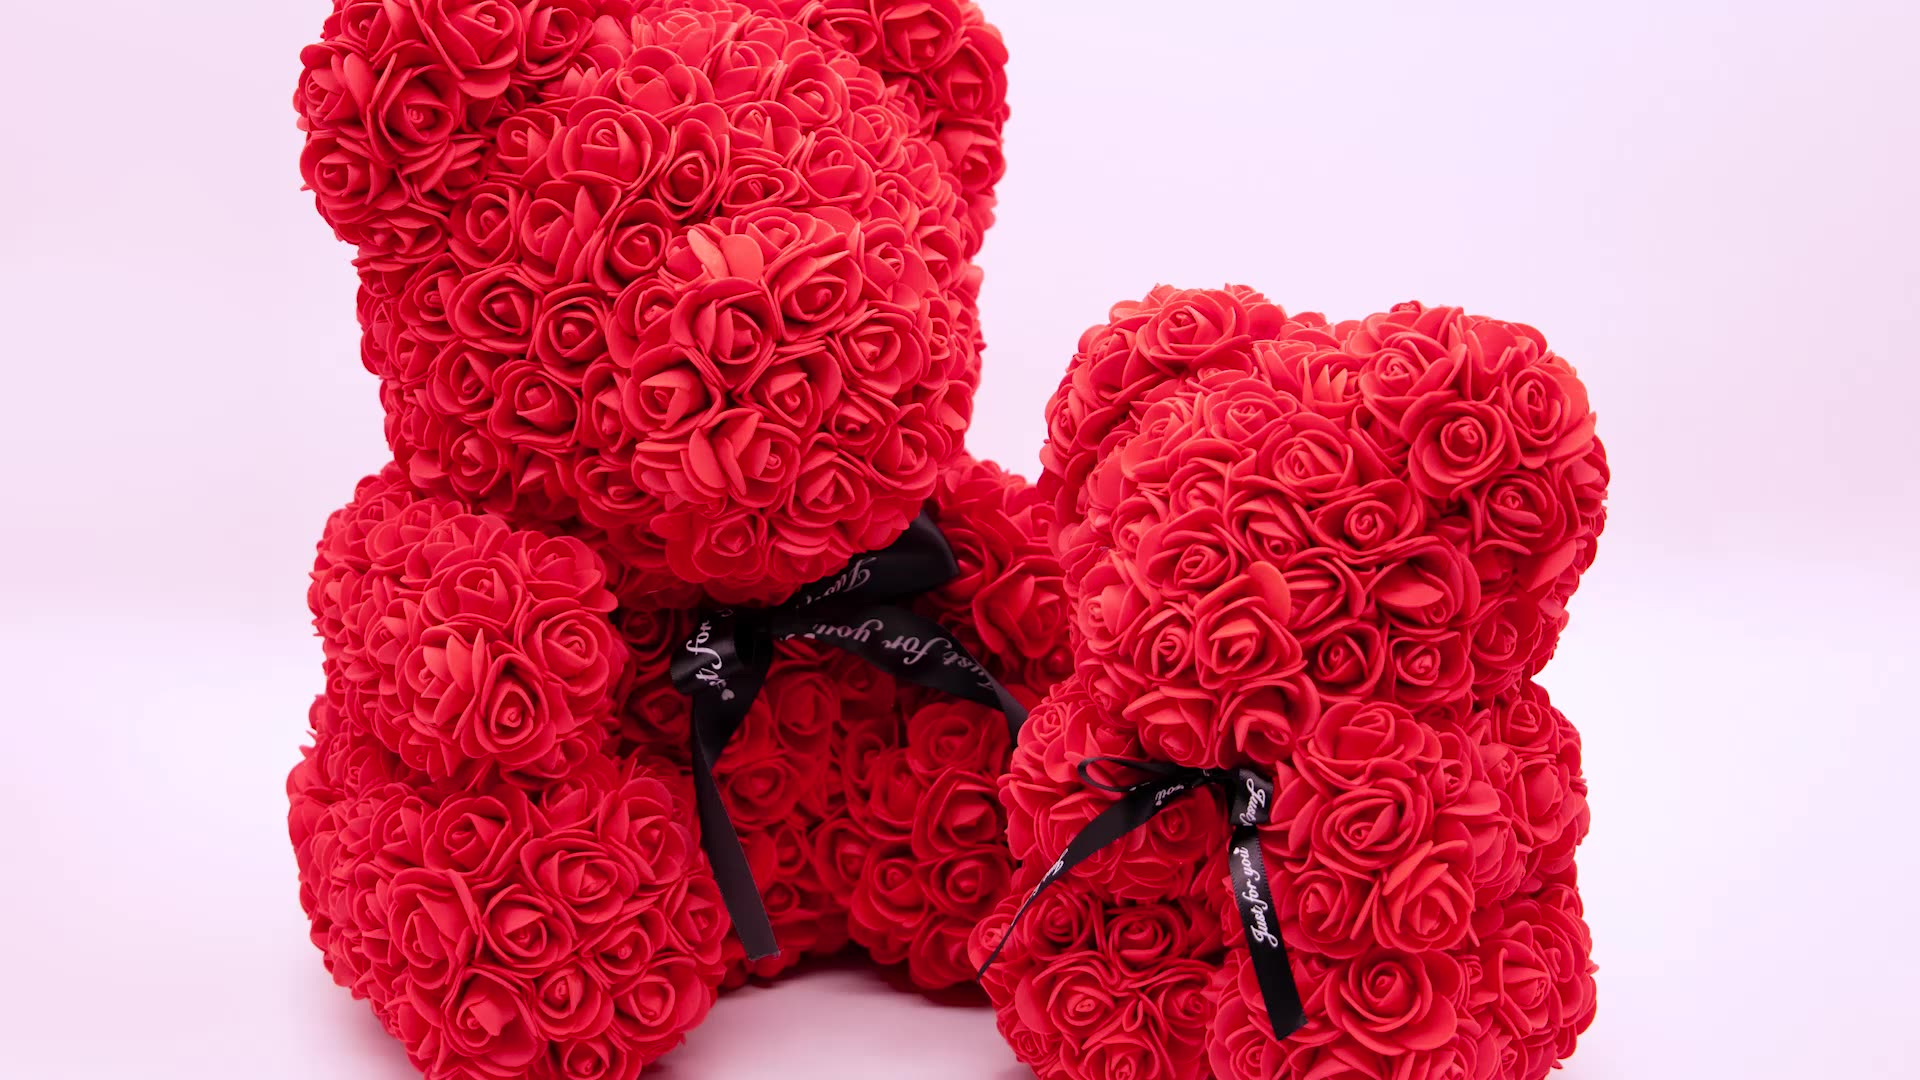 High Quality Artificial PE 25CM Colorful Red Rose Bear Teddy Bear Rose With Ribbon Valentine Day Gifts